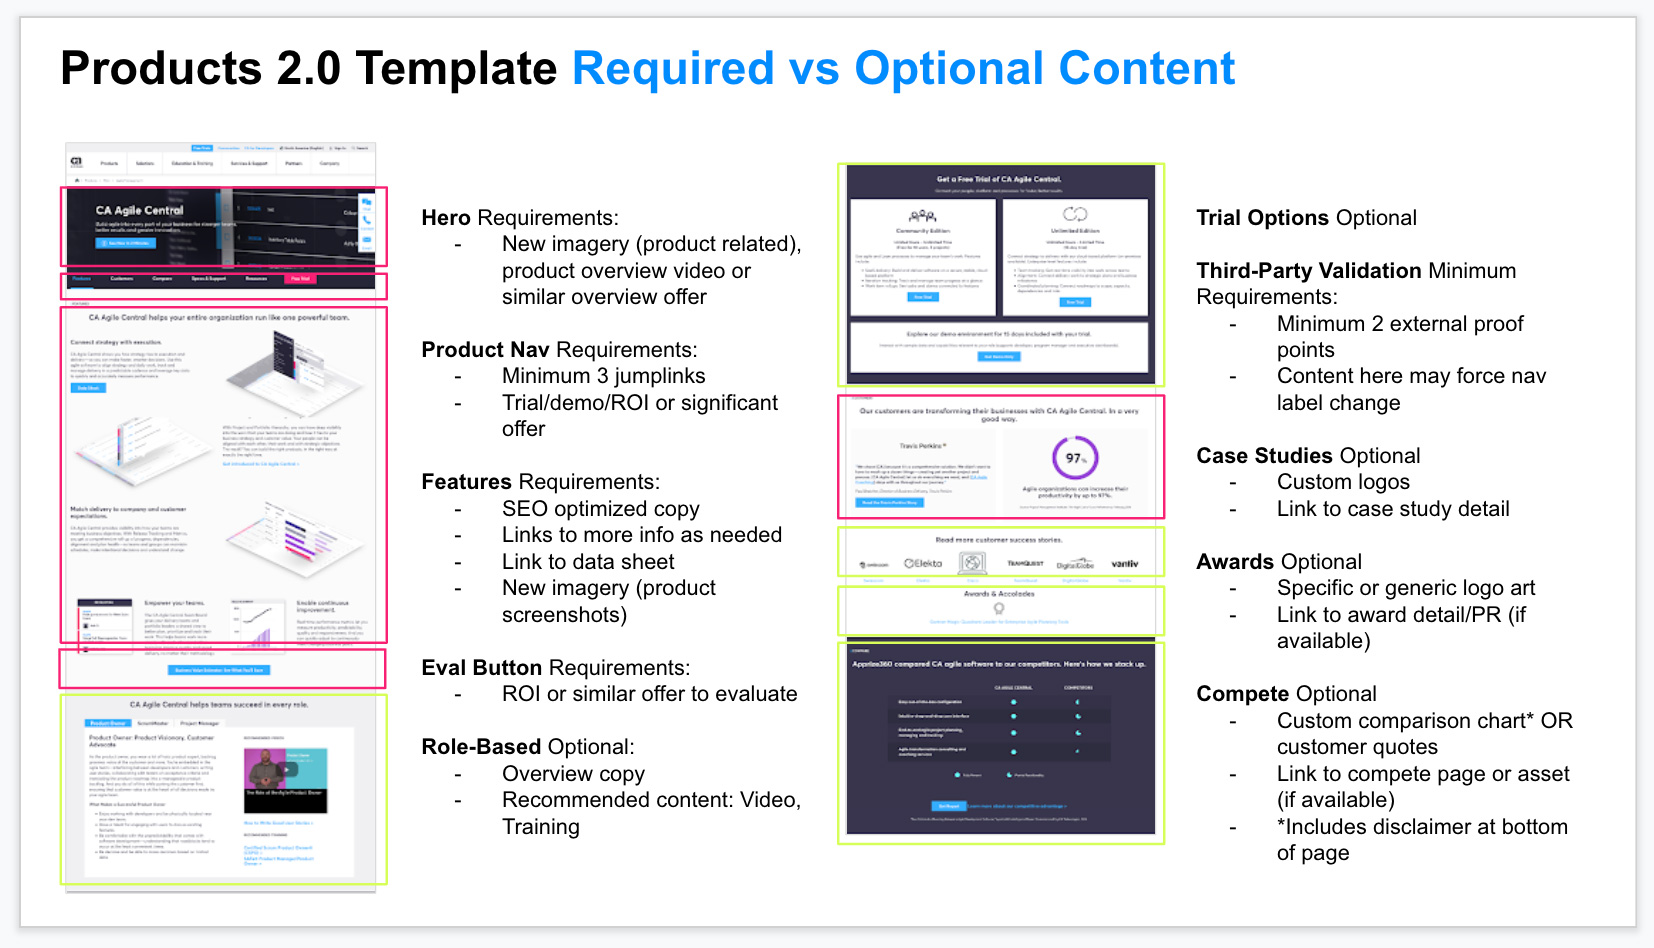 For complex templates, a further breakdown of required vs optional content to complete the page.